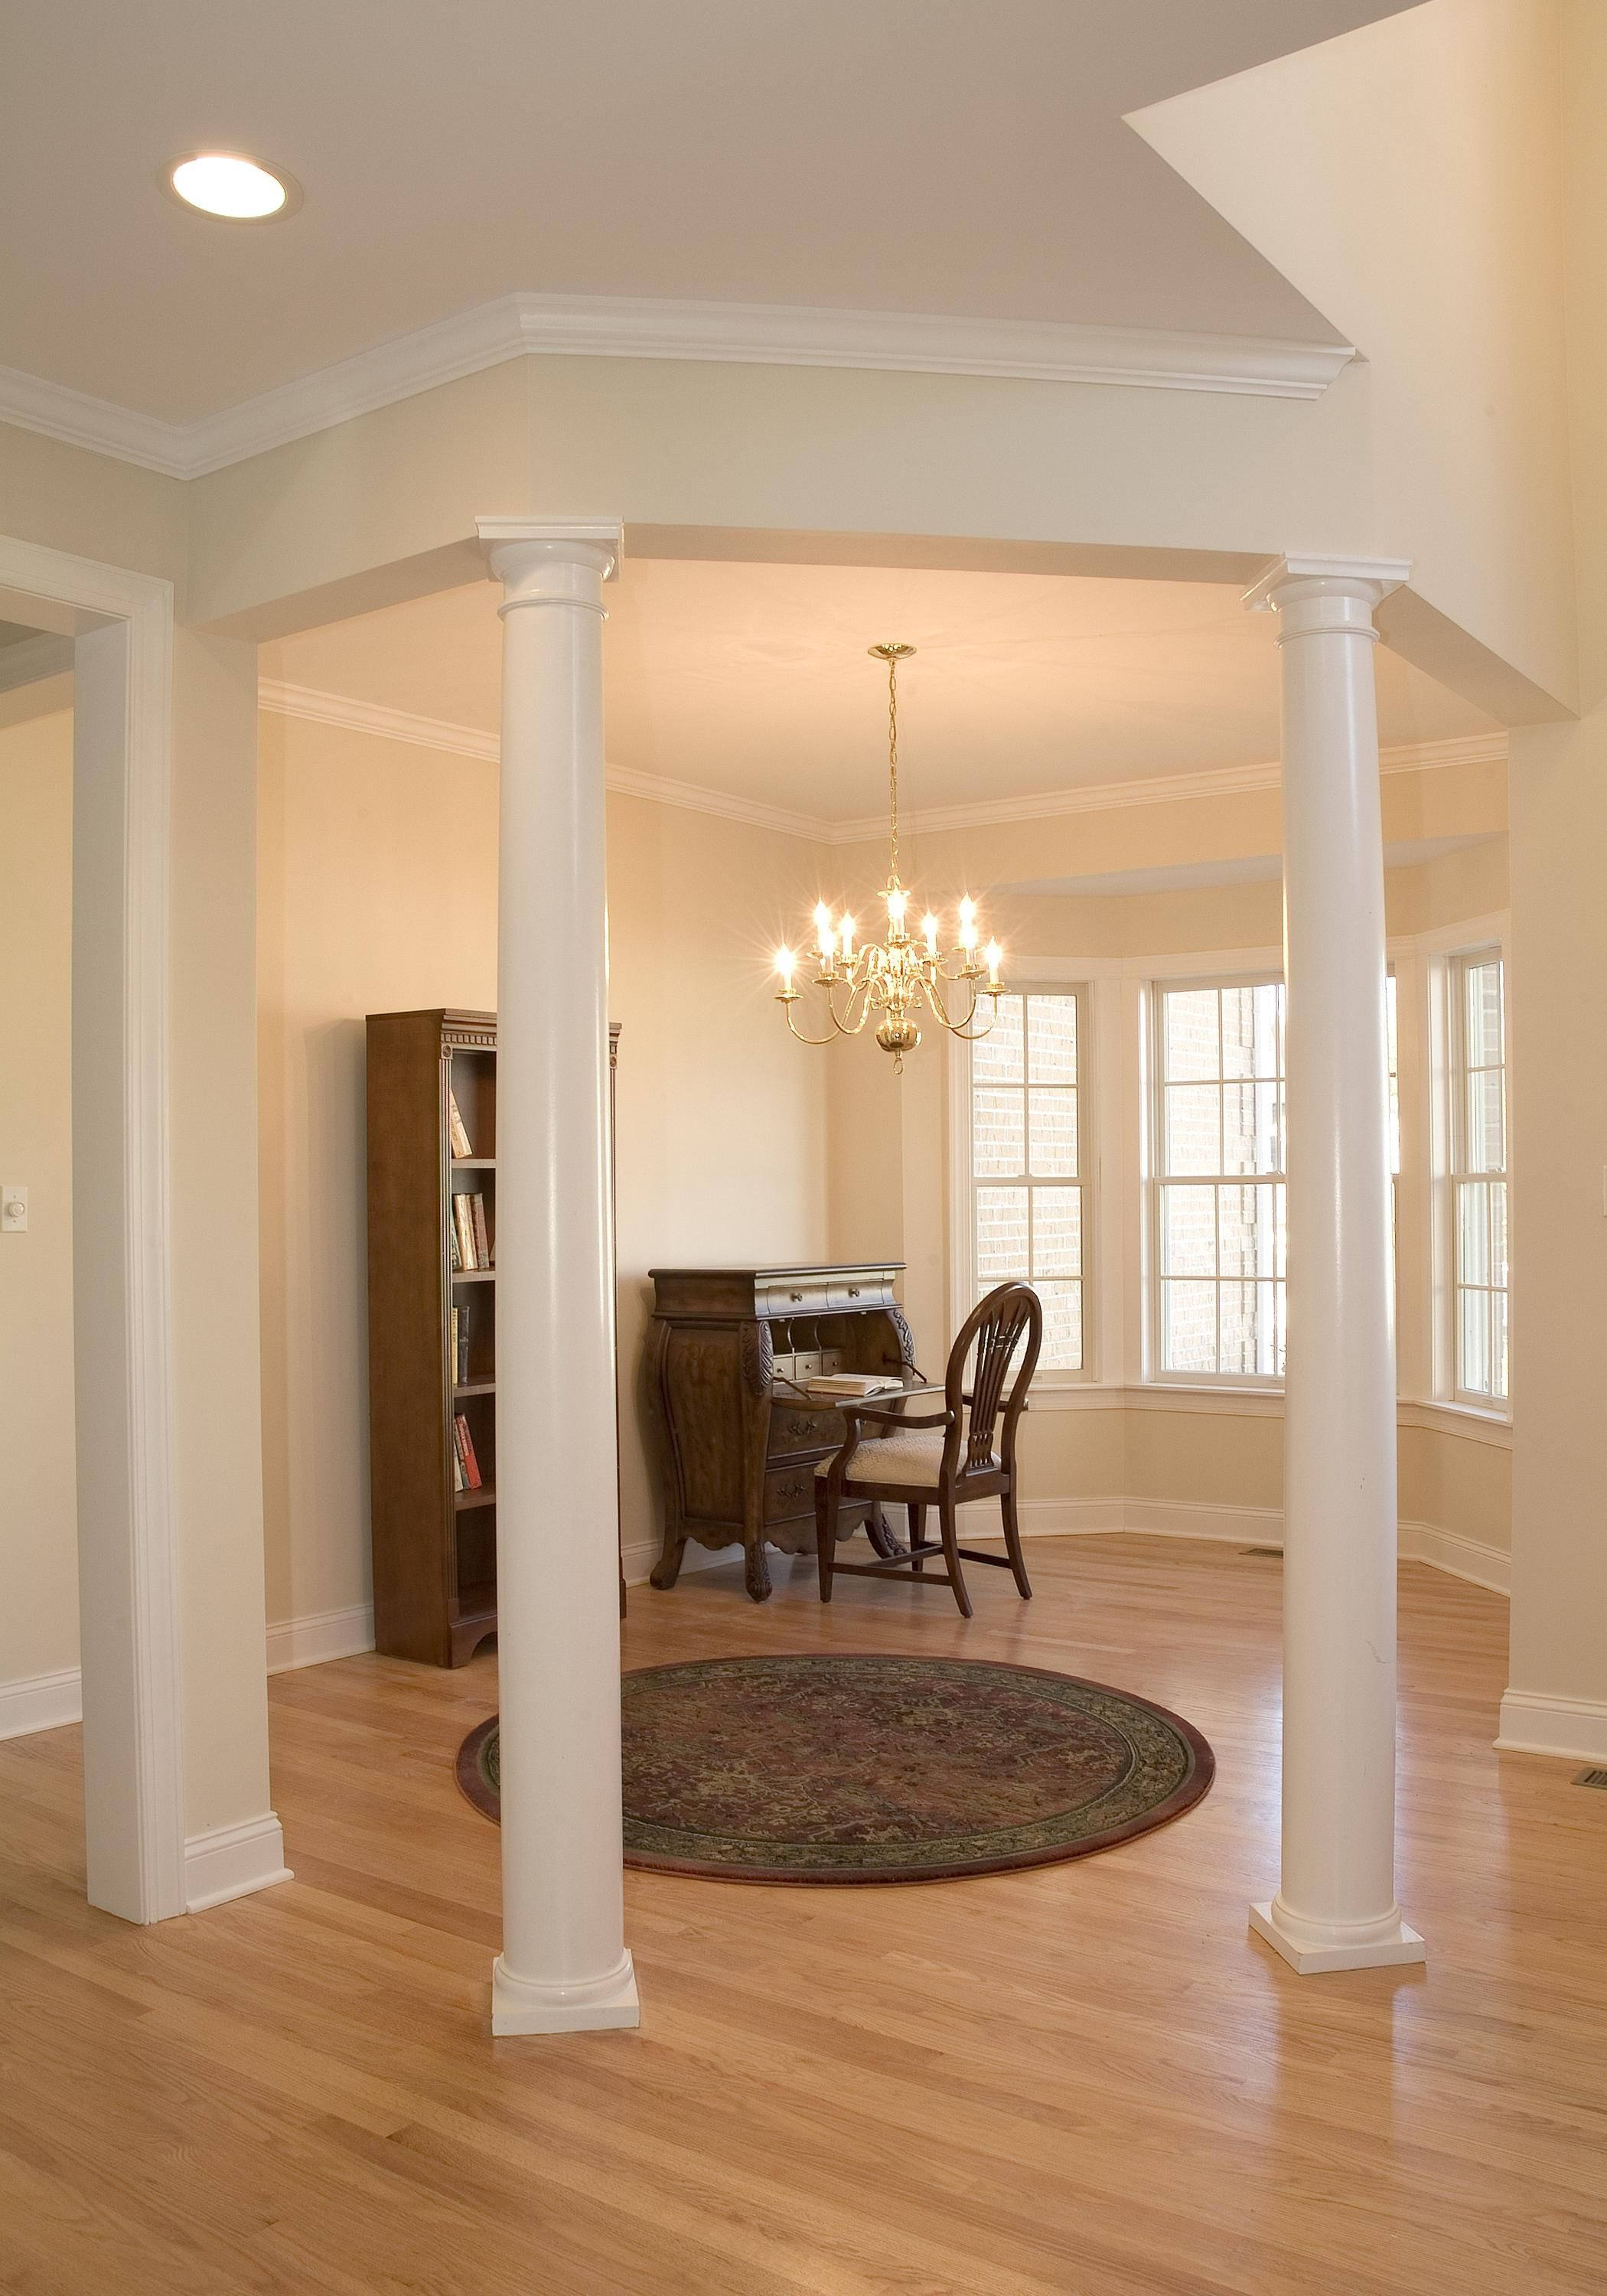 interior design columns - 1000+ images about Music room/library on Pinterest Grand pianos ...